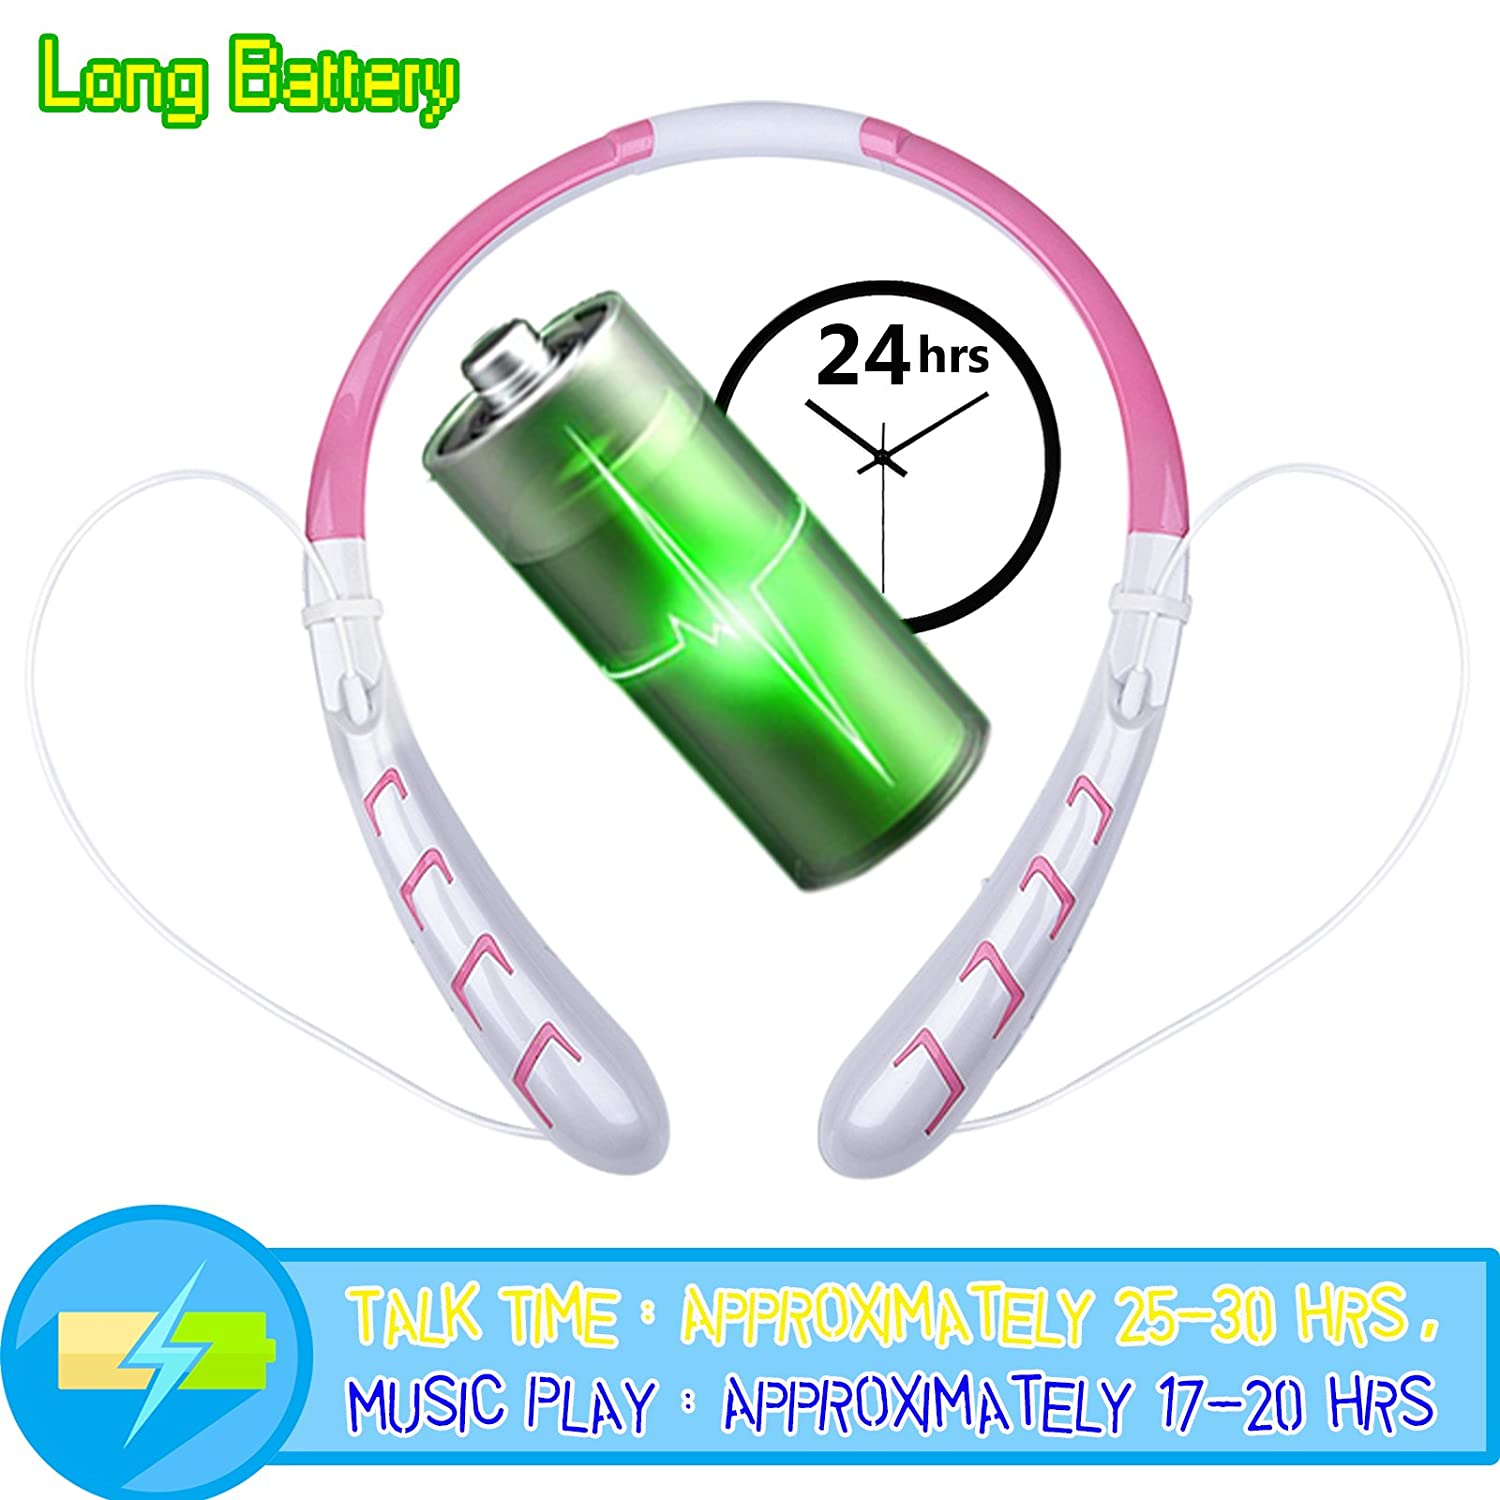 Bluetooth Headphones Continuous Earphones Pink White Image 3